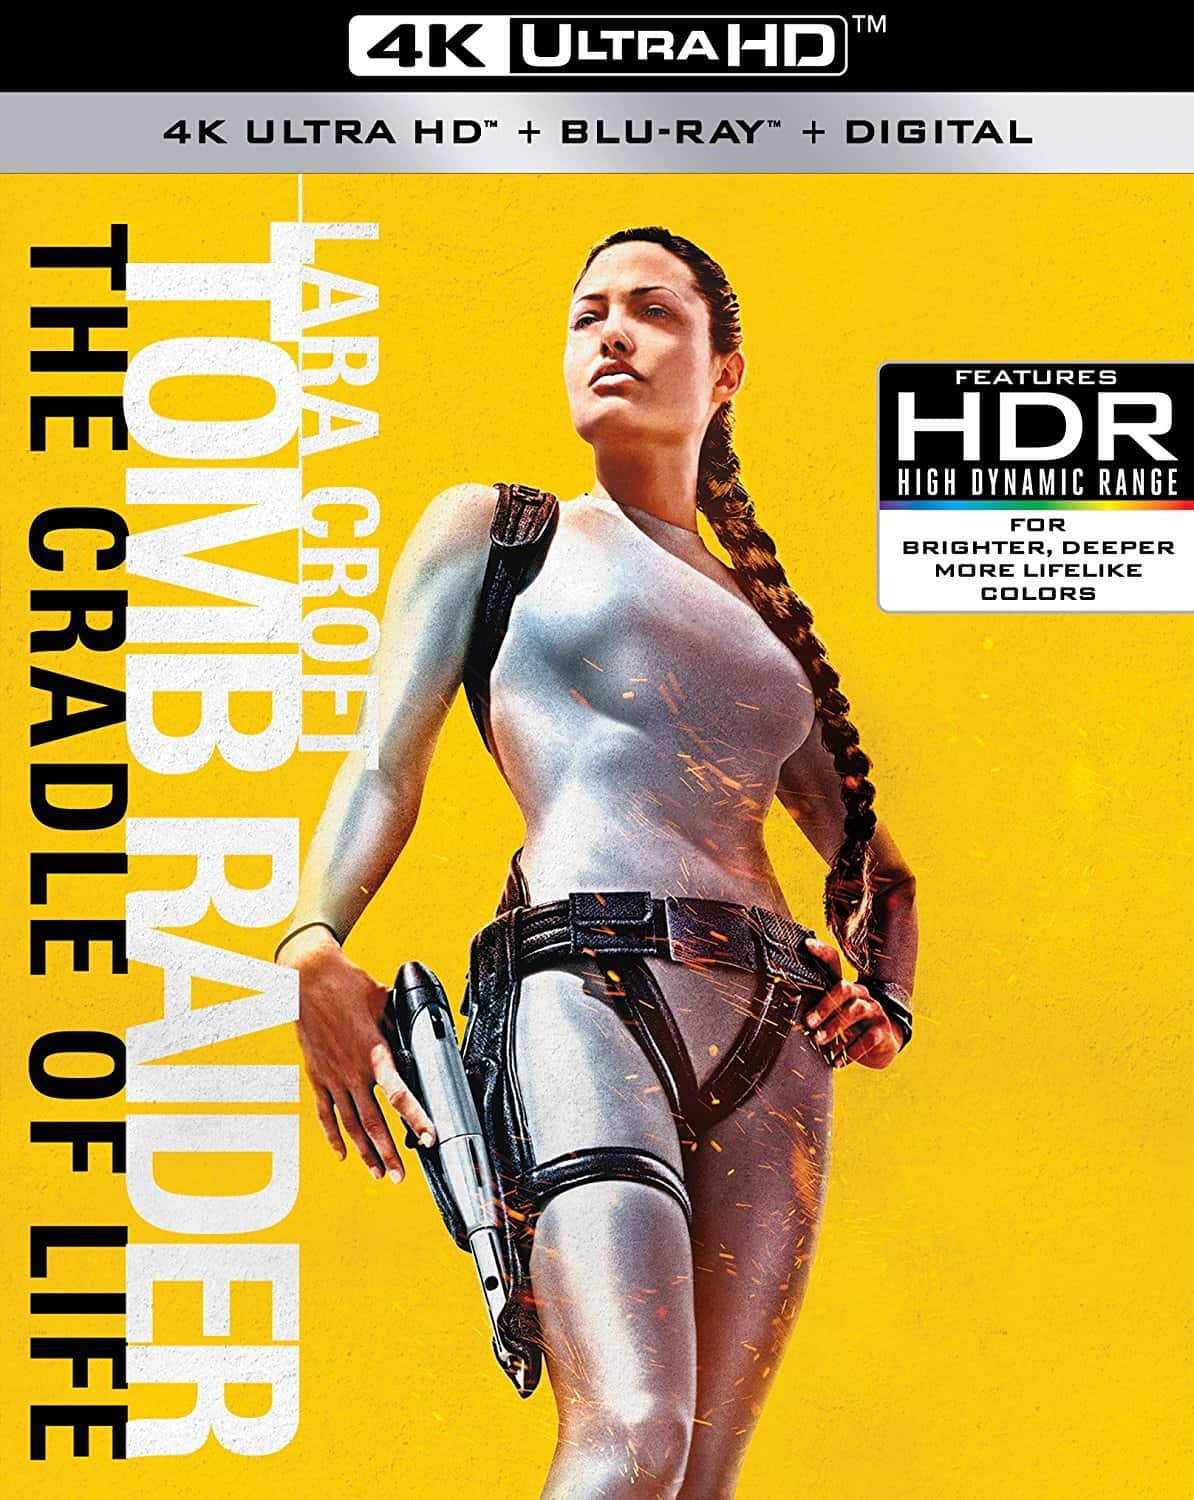 Lara Croft Tomb Raider The Cradle of Life 4K HDR 2003 Ultra HD 2160p